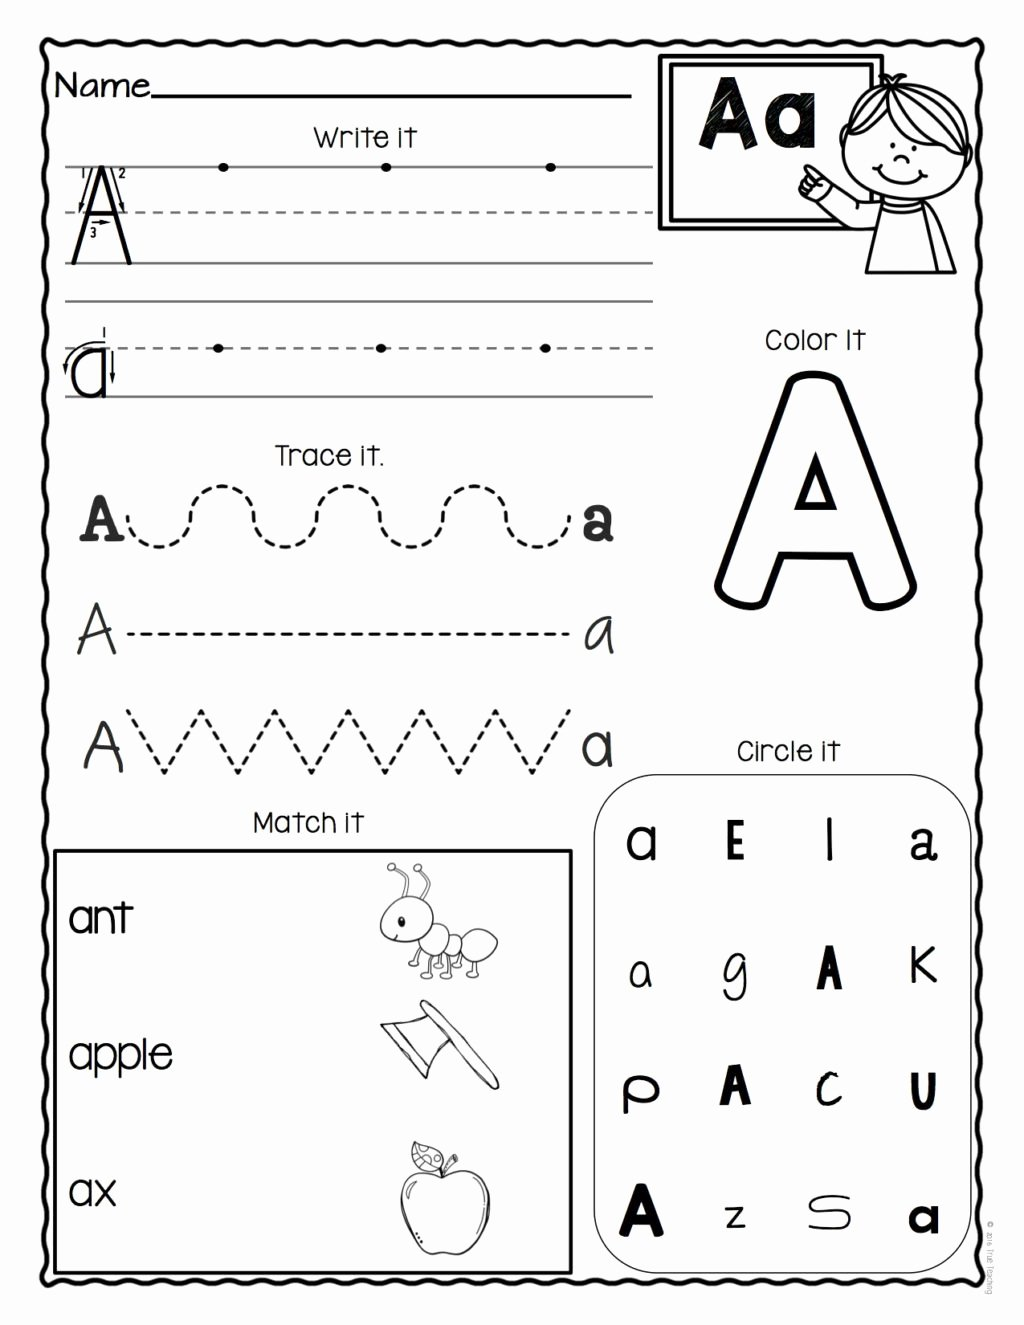 Printable Letter A Worksheets for Preschoolers Best Of Worksheet Worksheetool Letter Worksheets Z Set for Free